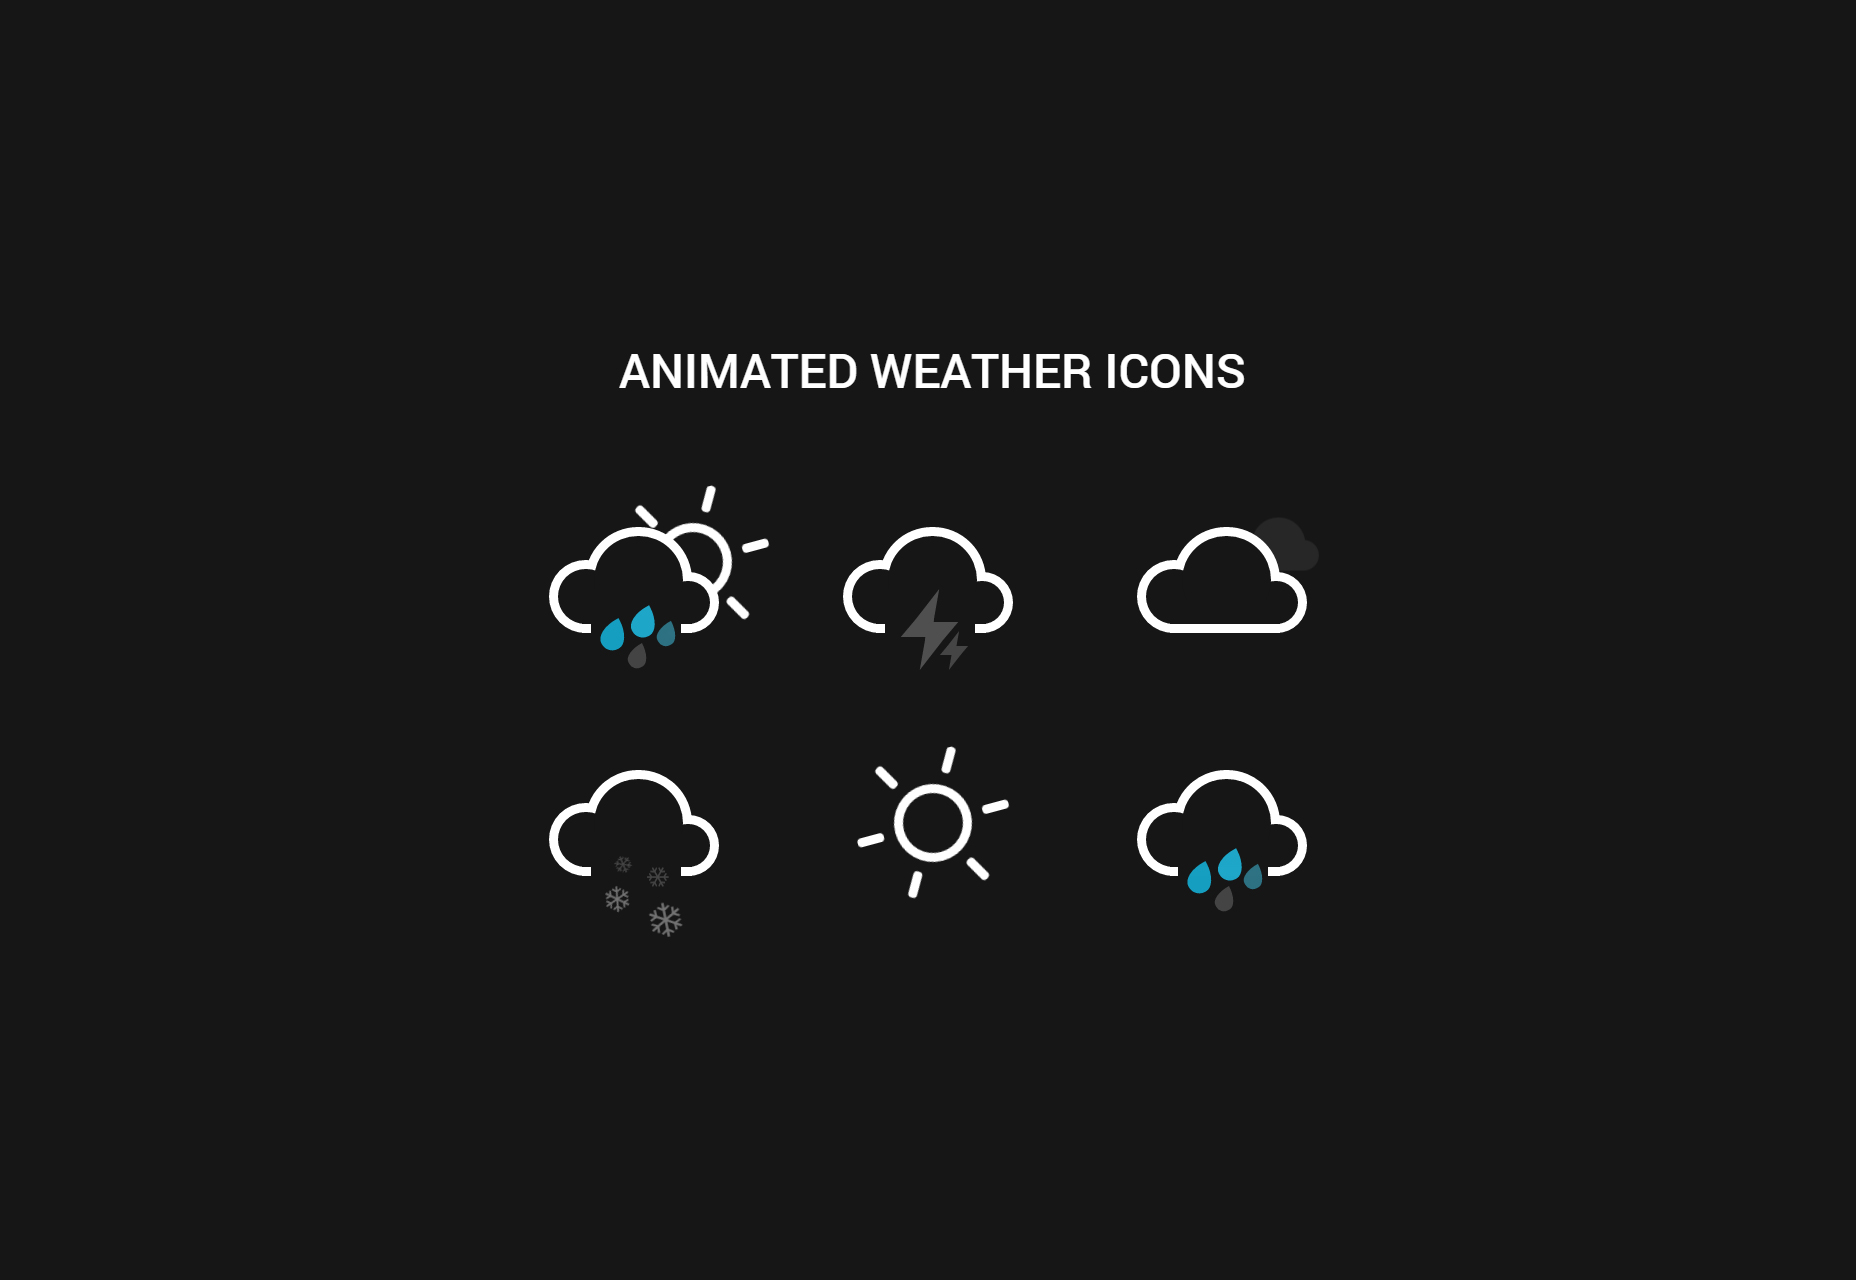 Animated Weather Icons CSS Snippet